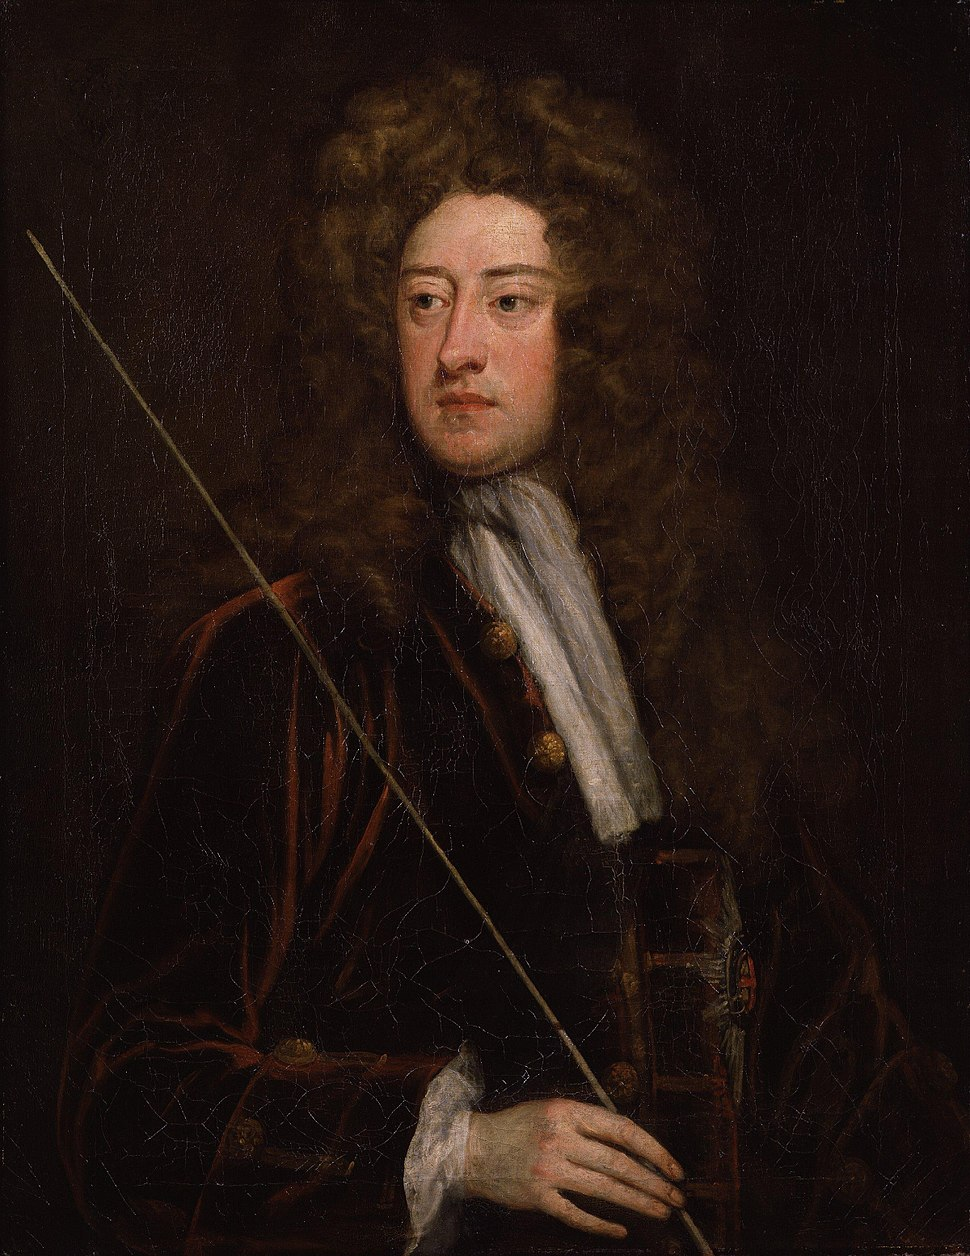 William Cavendish, 2nd Duke of Devonshire by Sir Godfrey Kneller, Bt